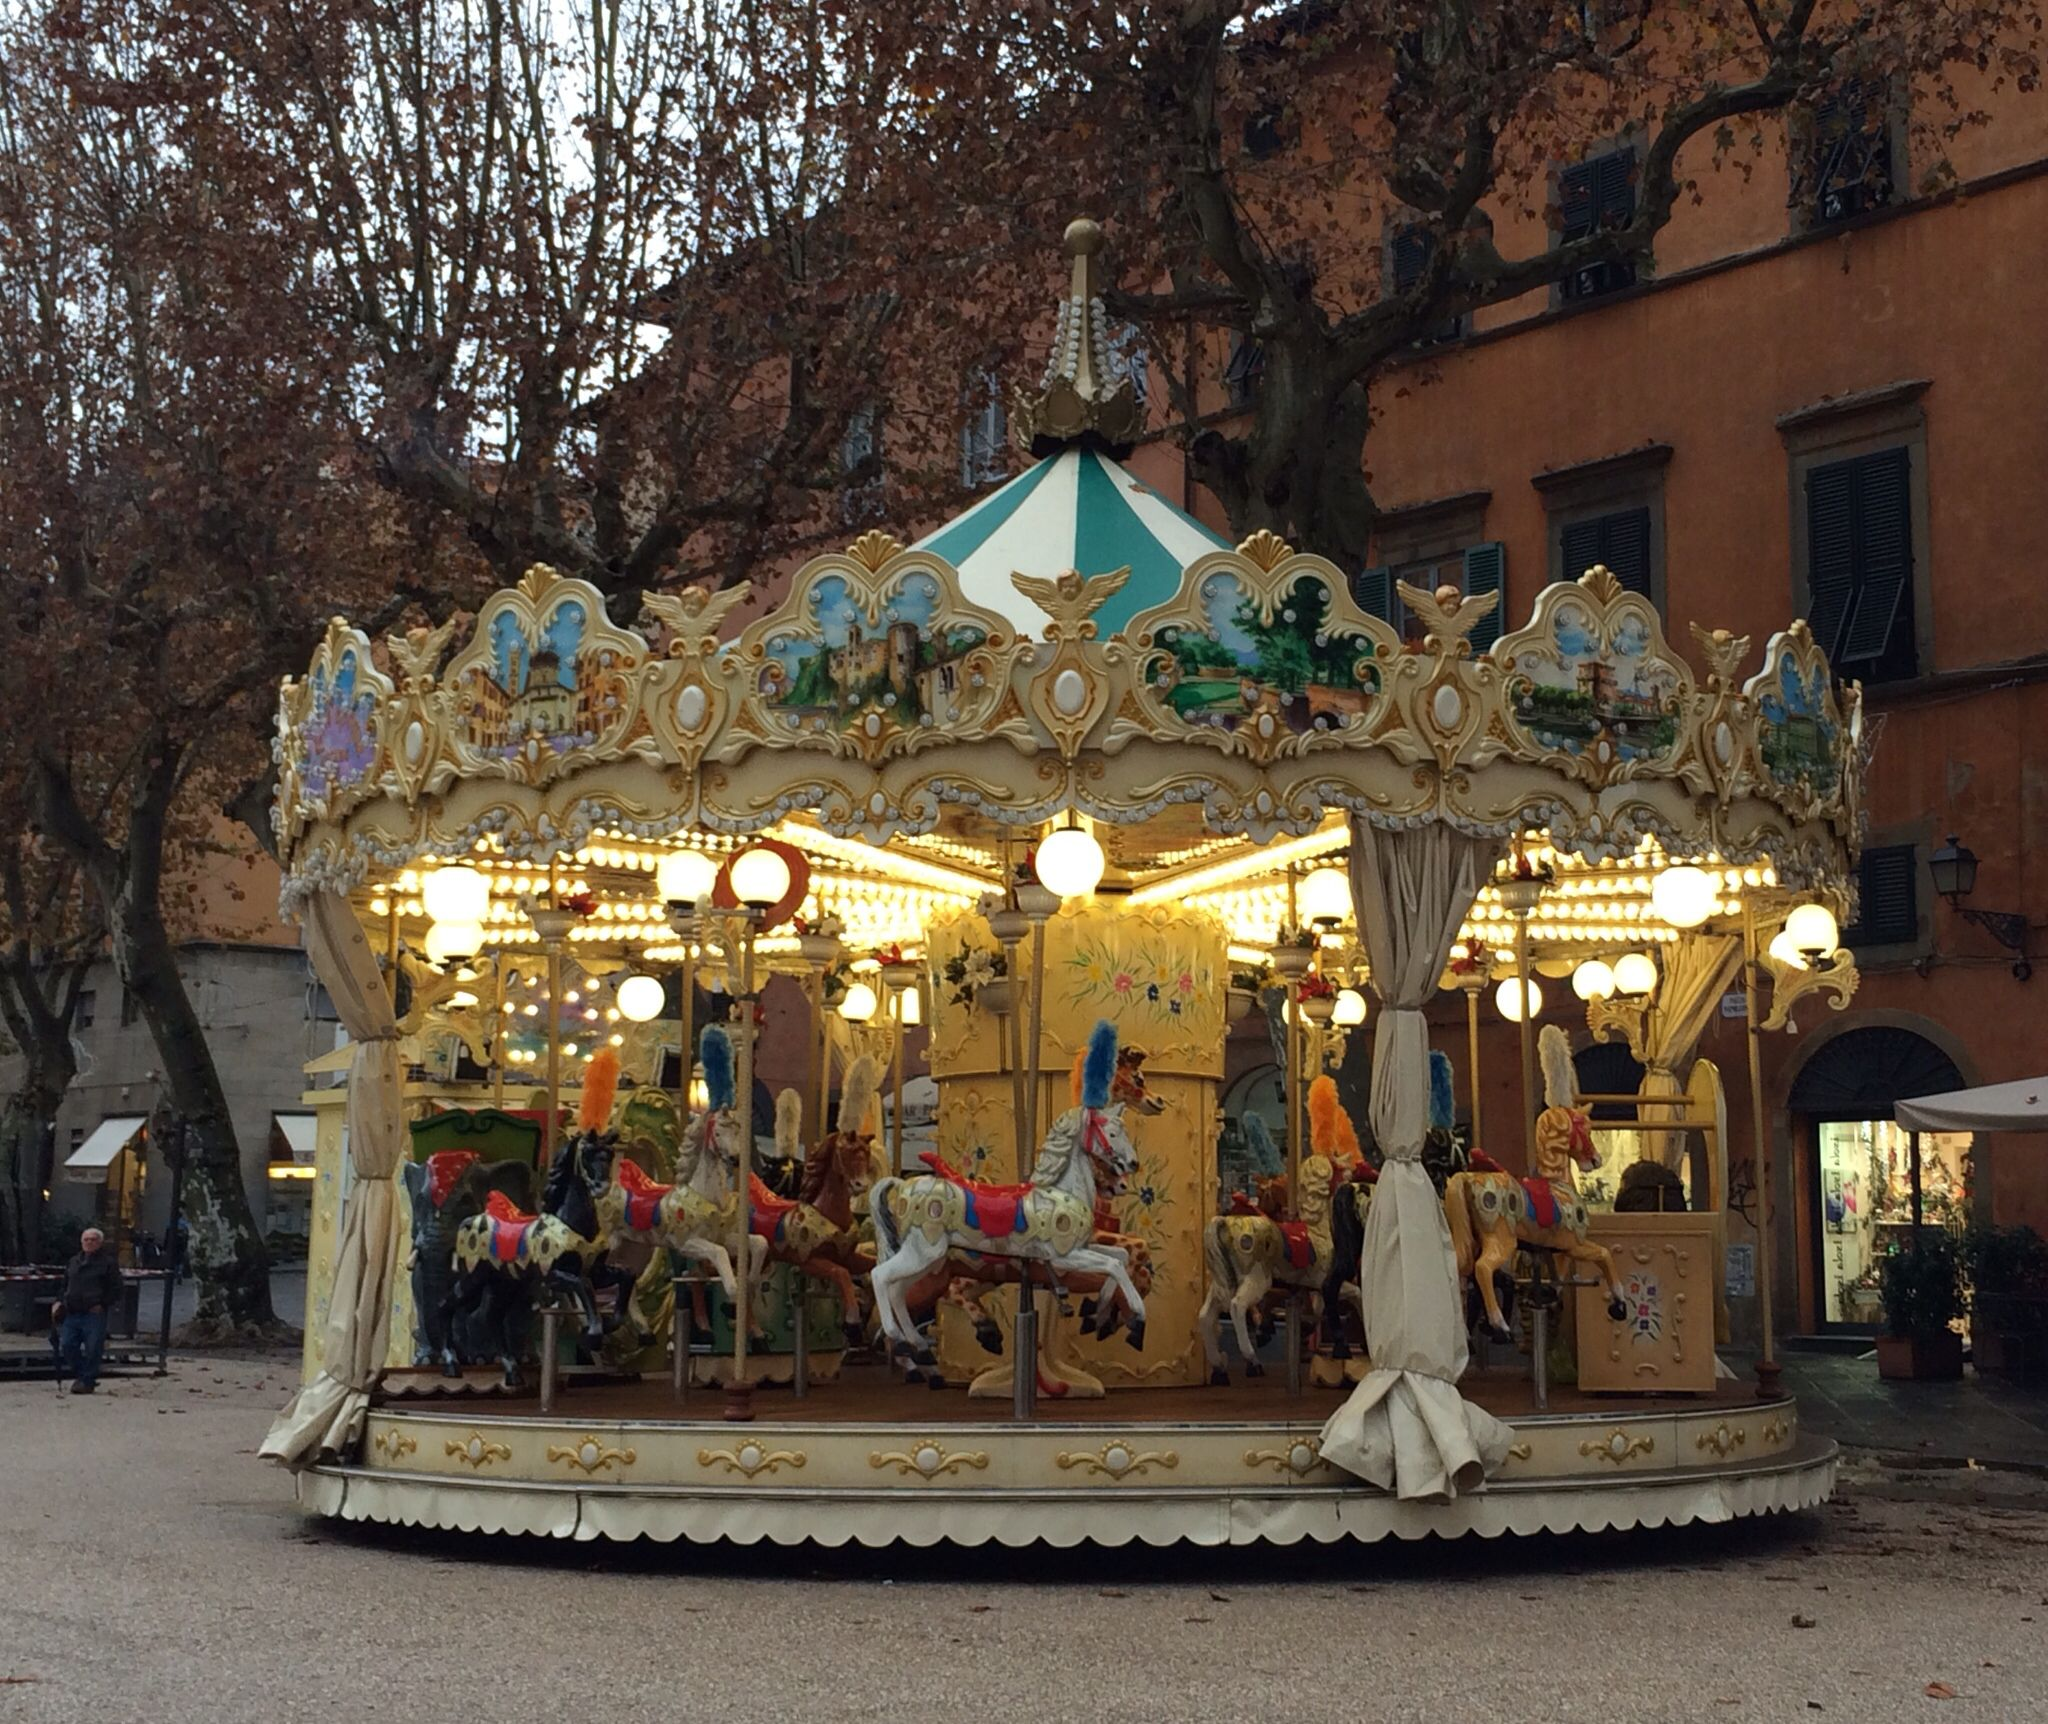 Carousel in Piazza Napoleone in Lucca, Italy. | Carousel horses ...